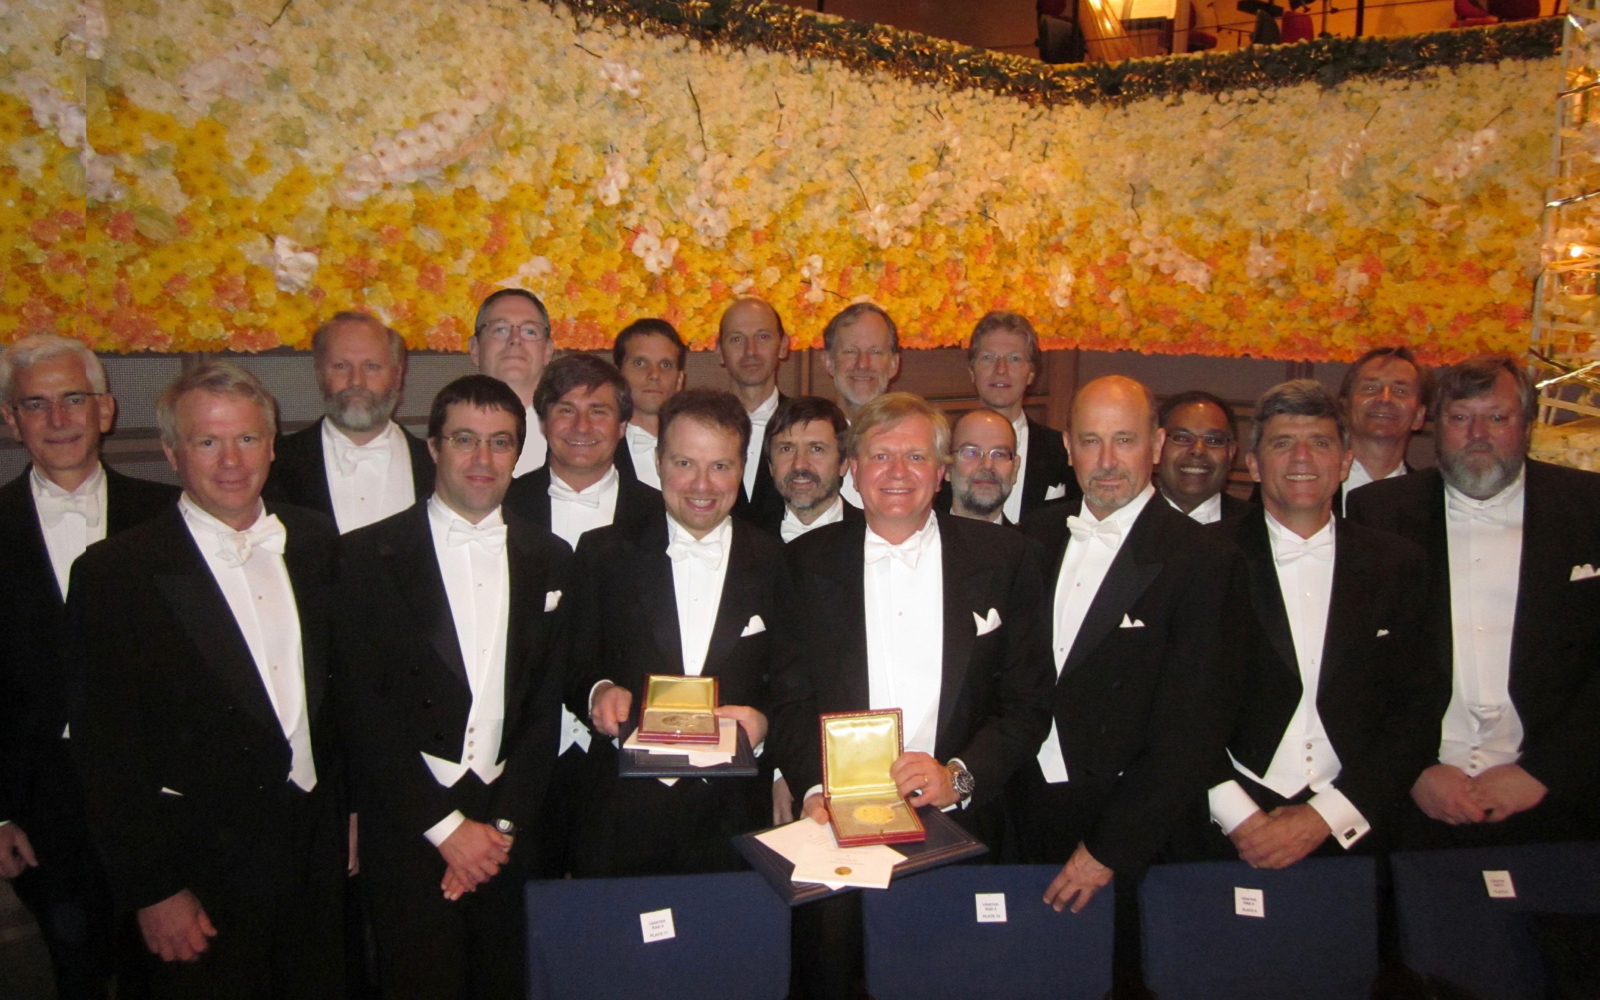 Une photo de groupe du High-Z Supernova Search Team célébrant aux cérémonies du prix Nobel à Stockholm en 2011